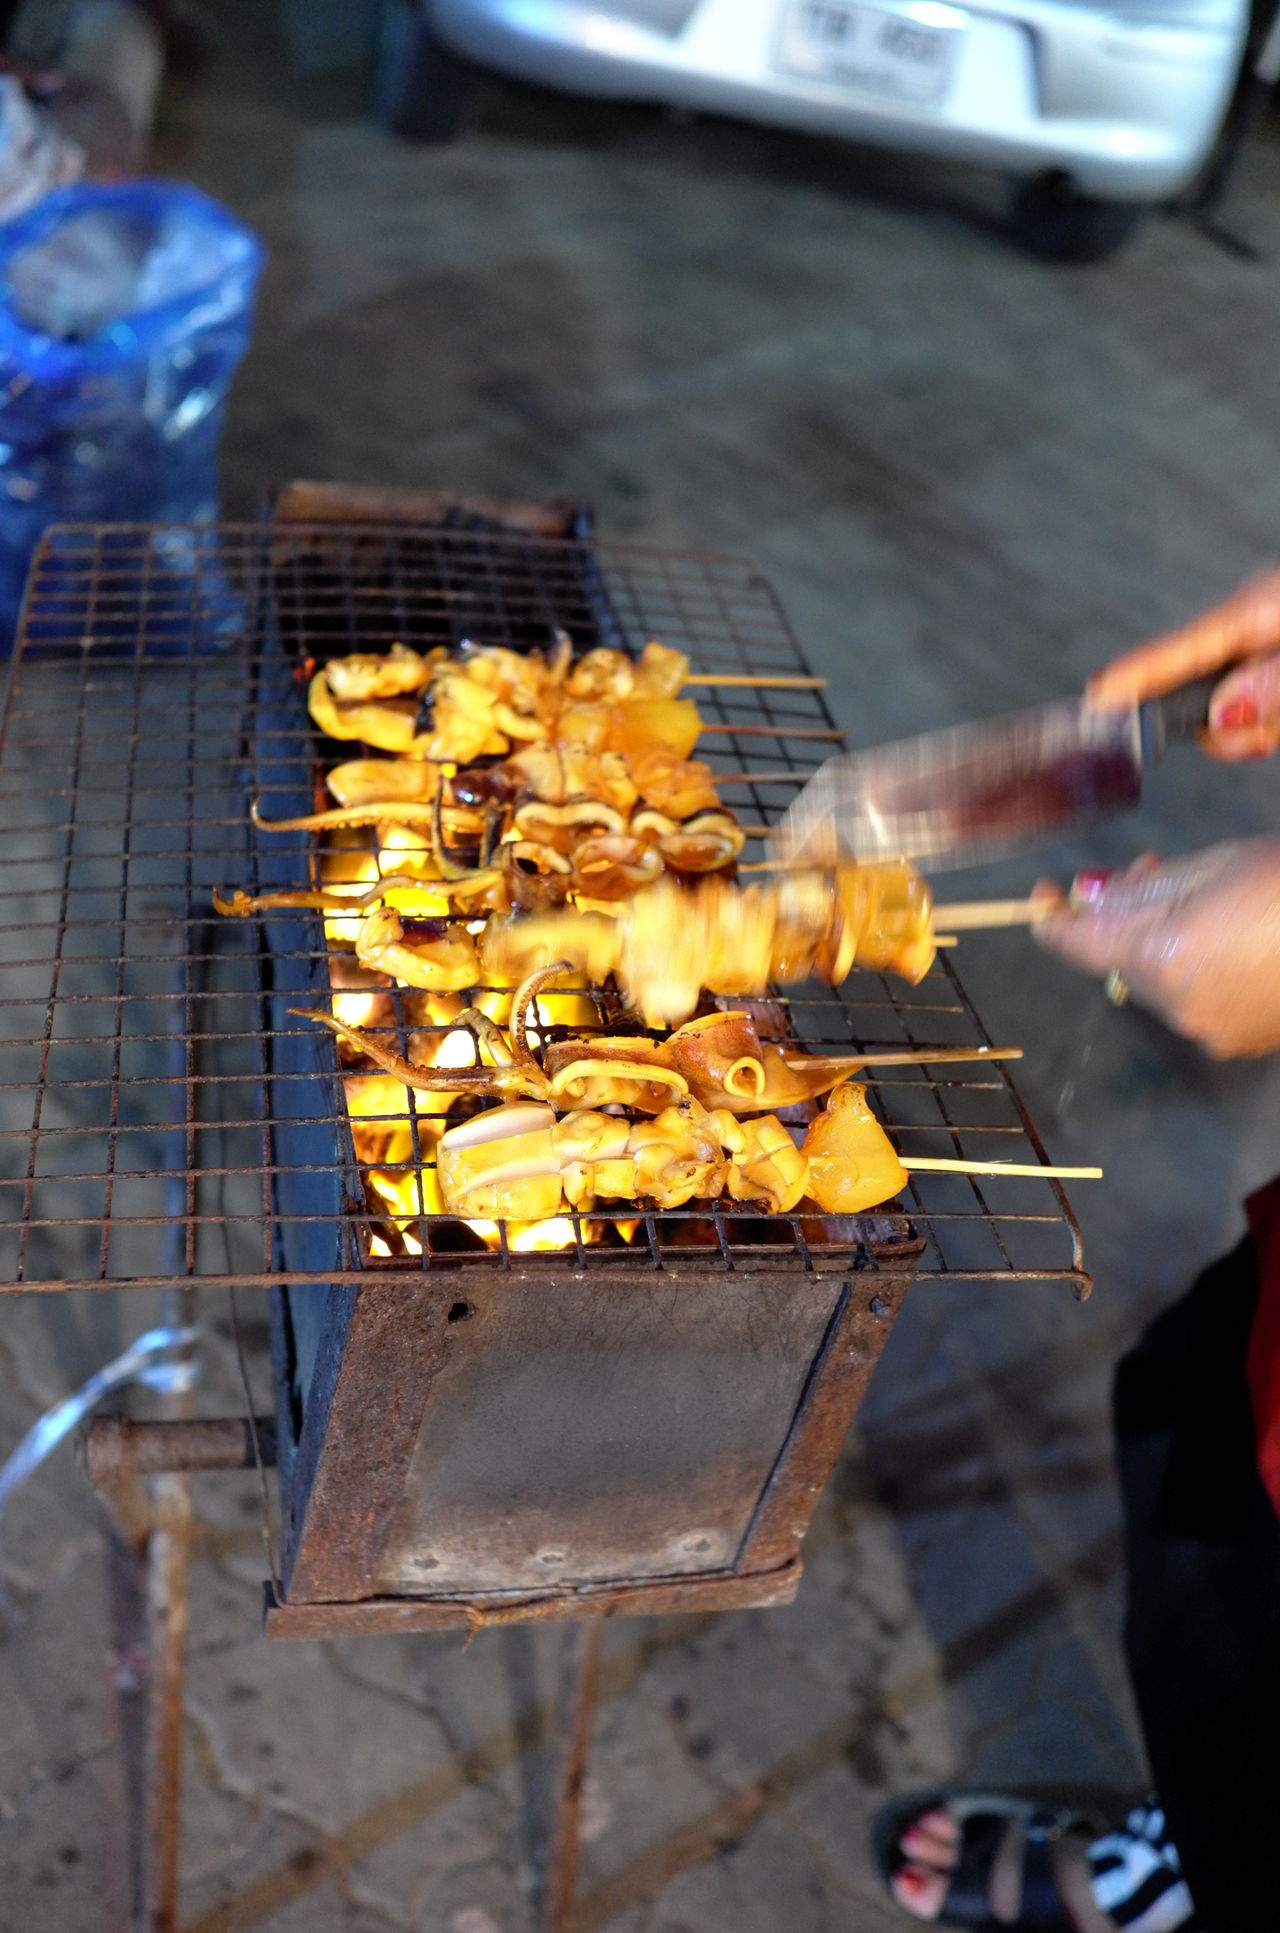 Barbecue Barbecue Grill Close-up Food Food And Drink Freshness Gril Grilled Human Body Part Human Hand Men Metal Grate Night Octopus One Person Outdoors People Real People Skewer Street Food Yellow